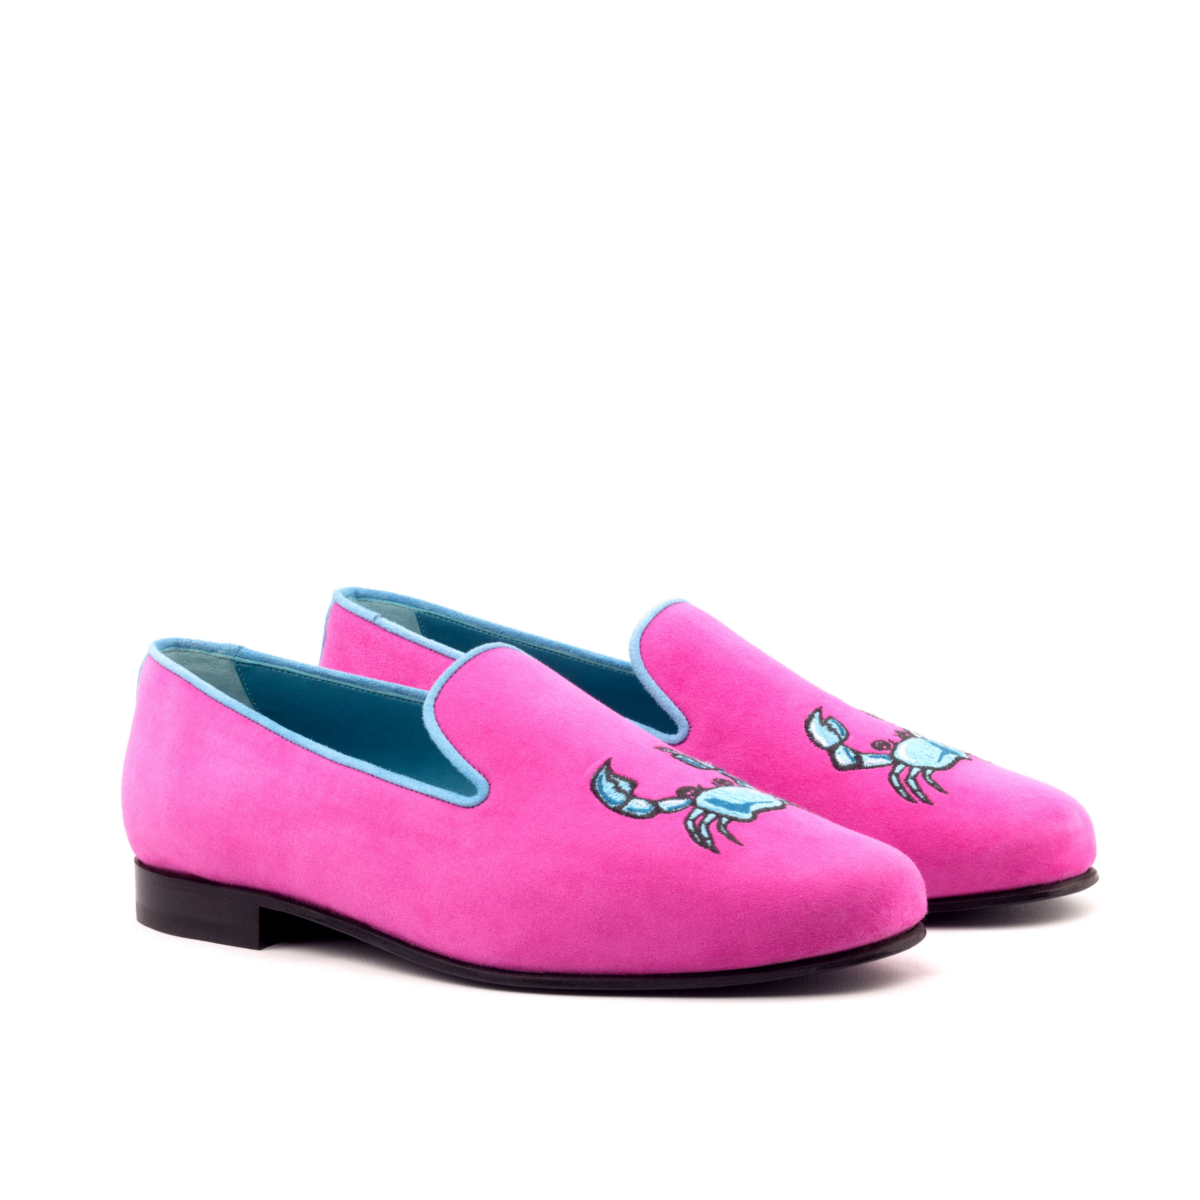 Fuschia suede Slipper